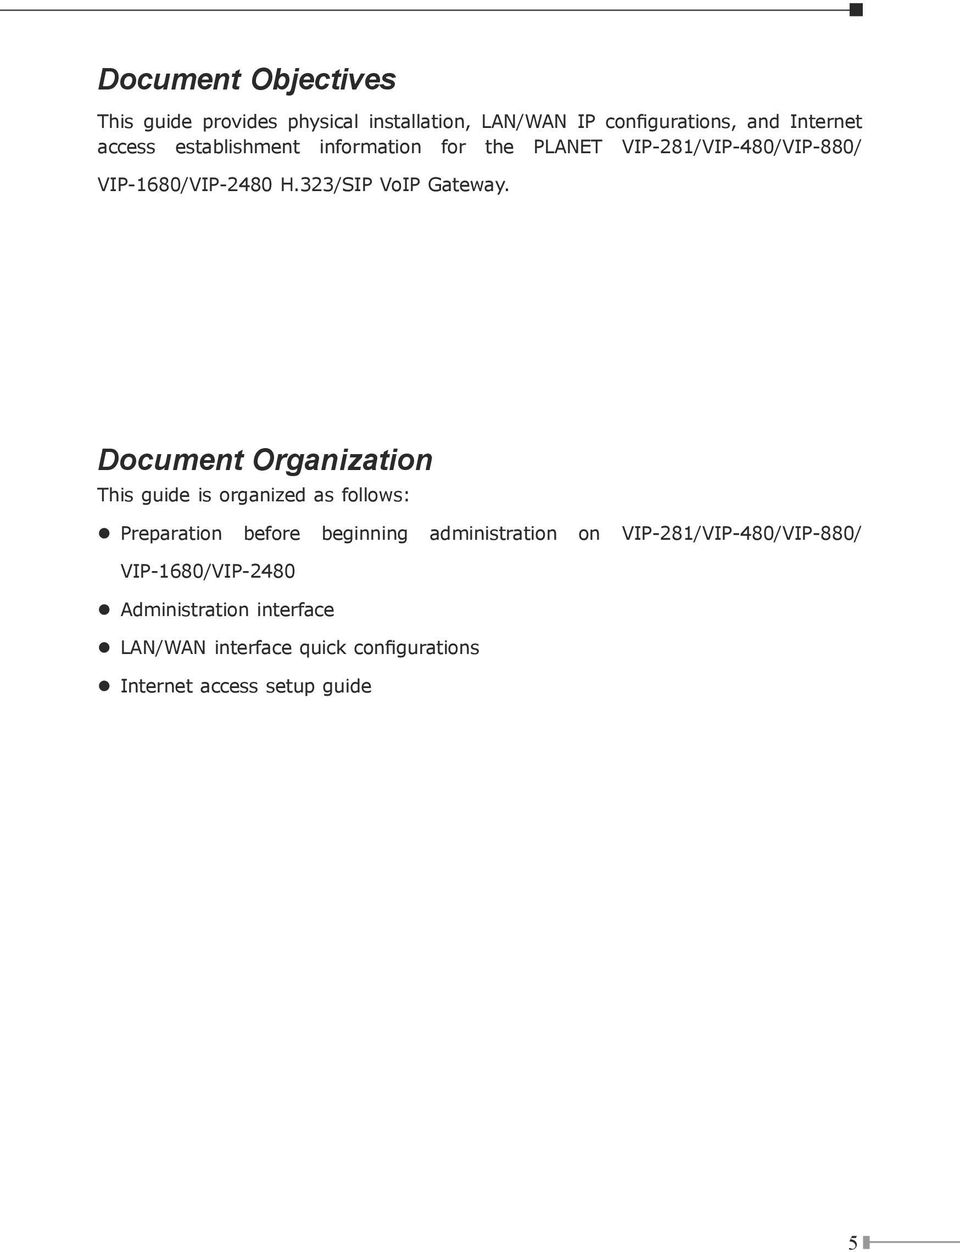 Document Organization This guide is organized as follows: Preparation before beginning administration on